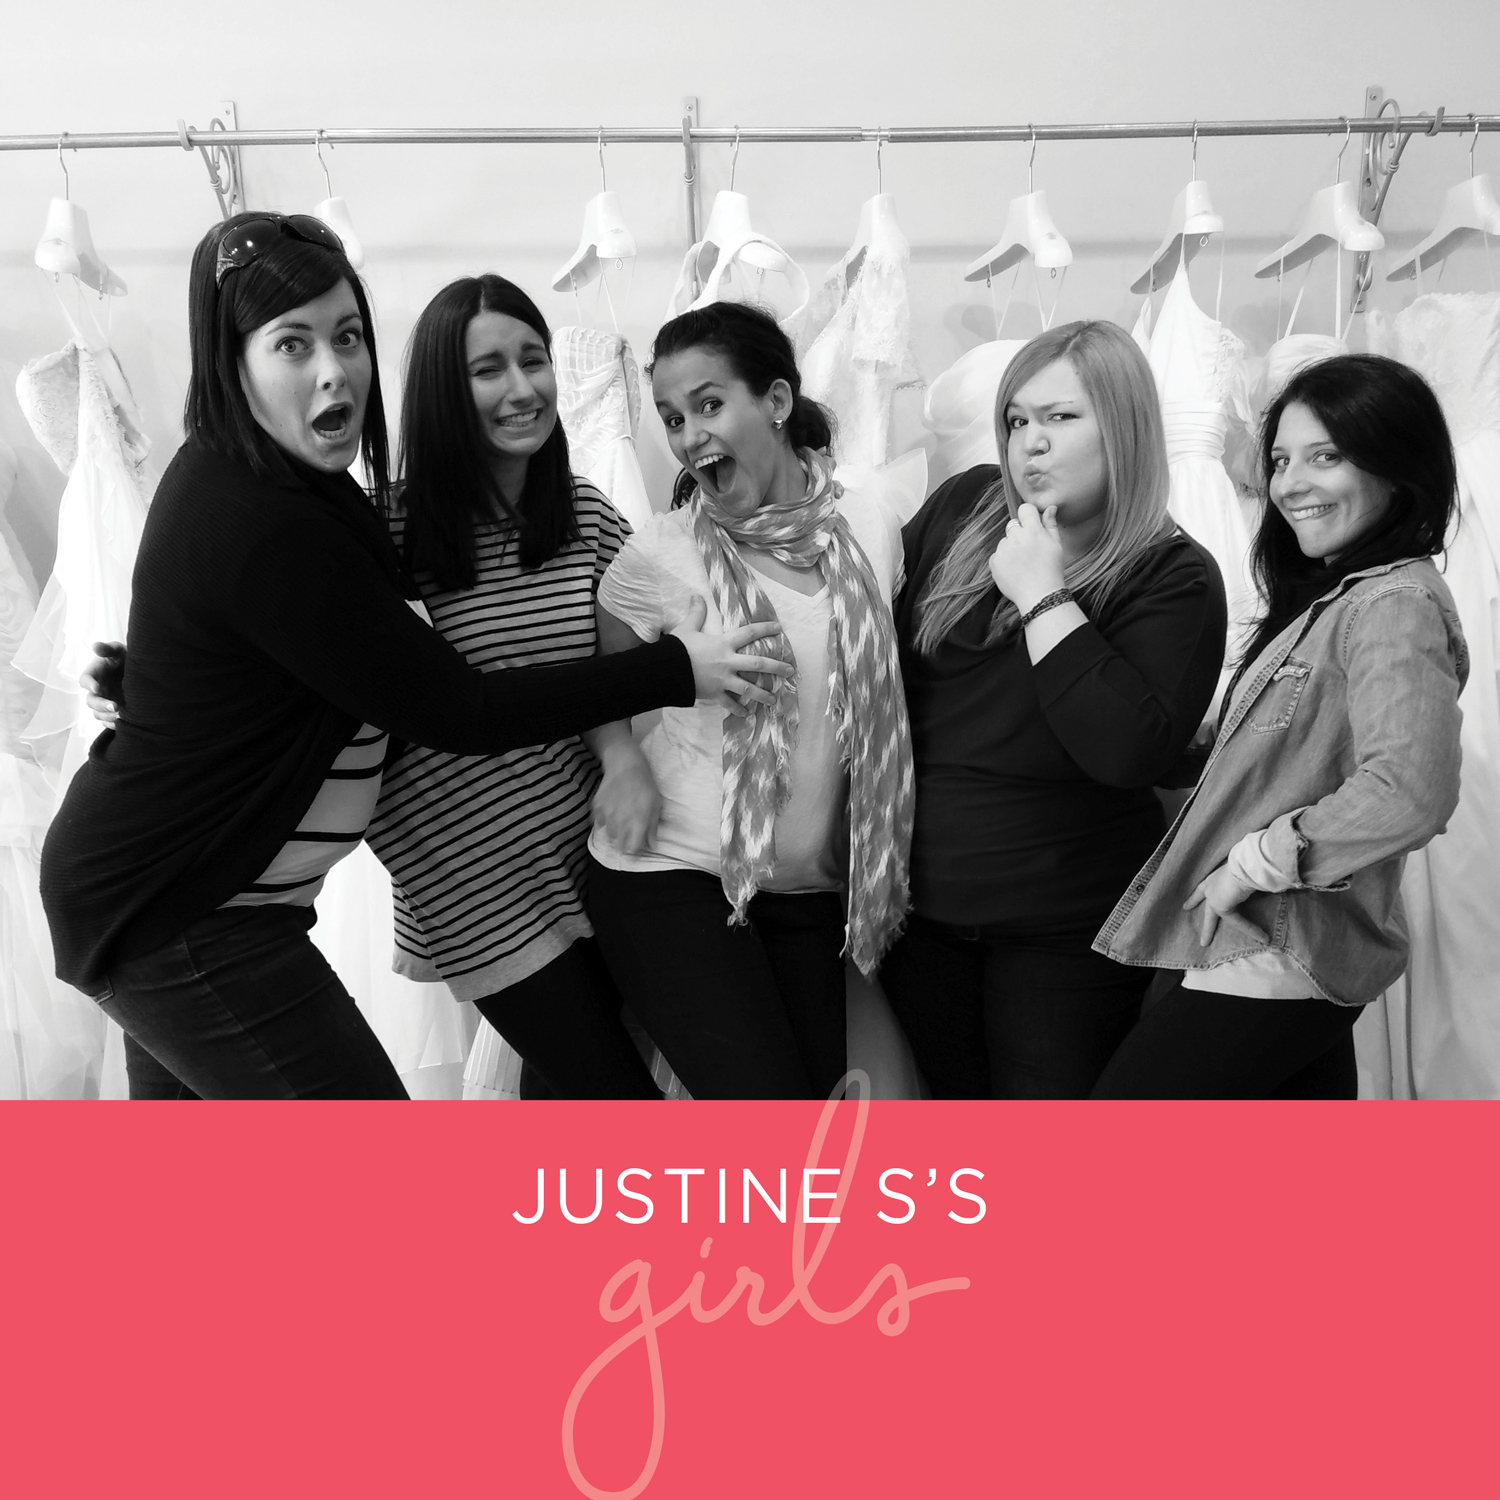 Pearl-Bridal-House-Love-Your-Girls-Justins-S.jpg